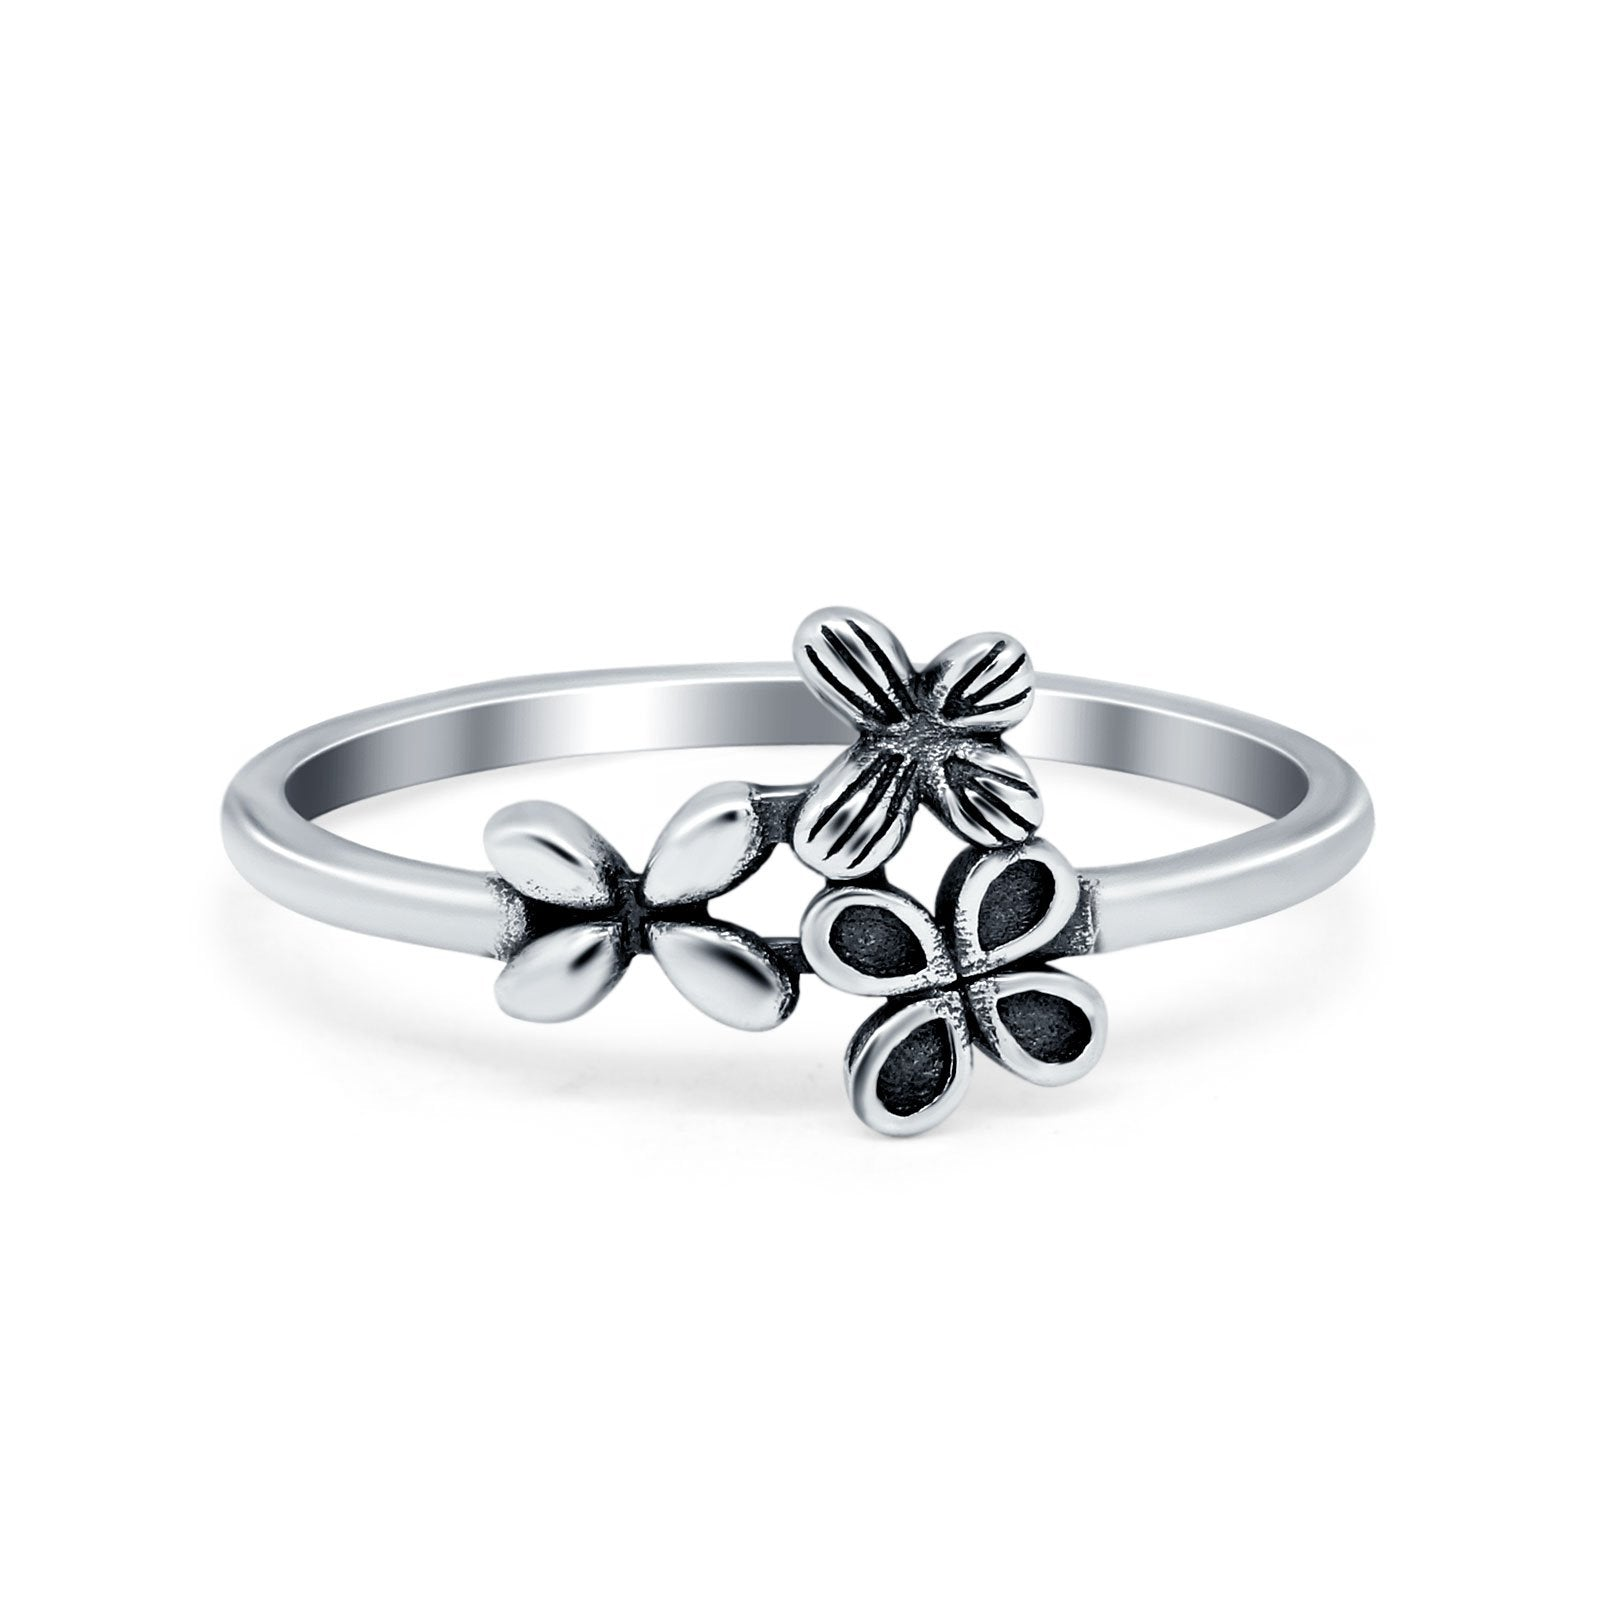 Three Butterflies Ring Plain Band Oxidized 925 Sterling Silver